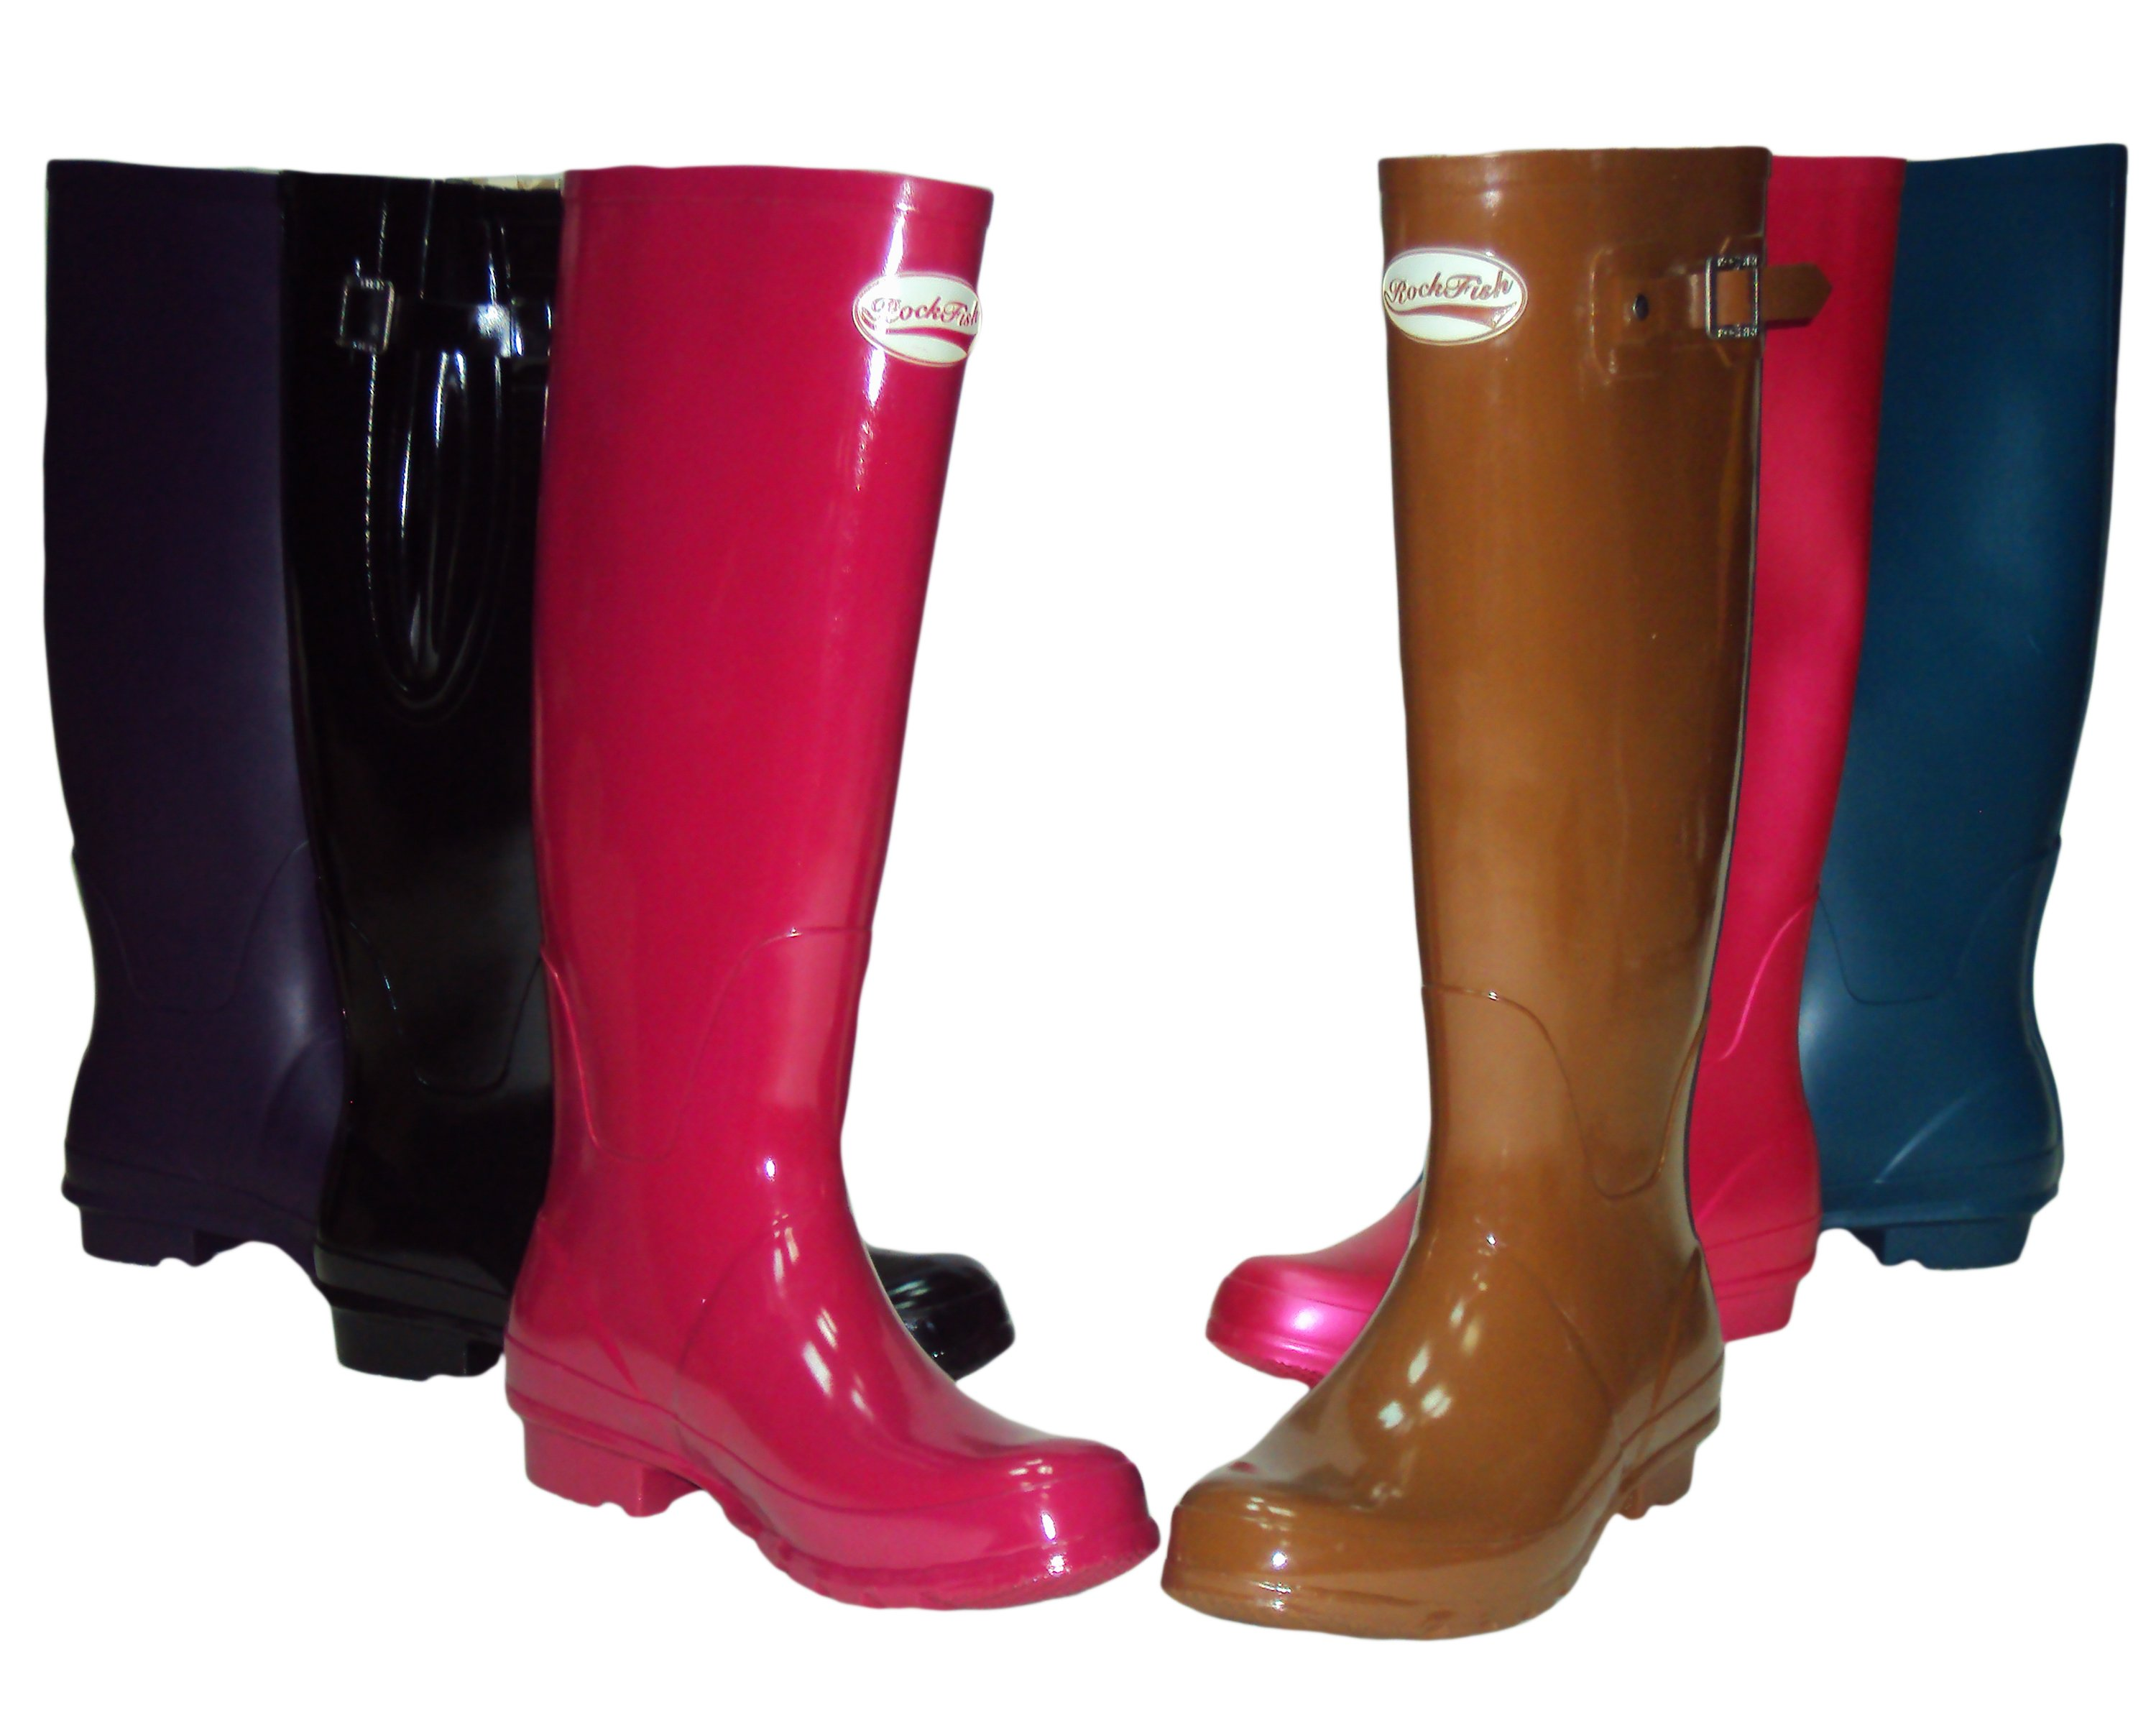 ROCK FISH RUBBER LONG BOOTS